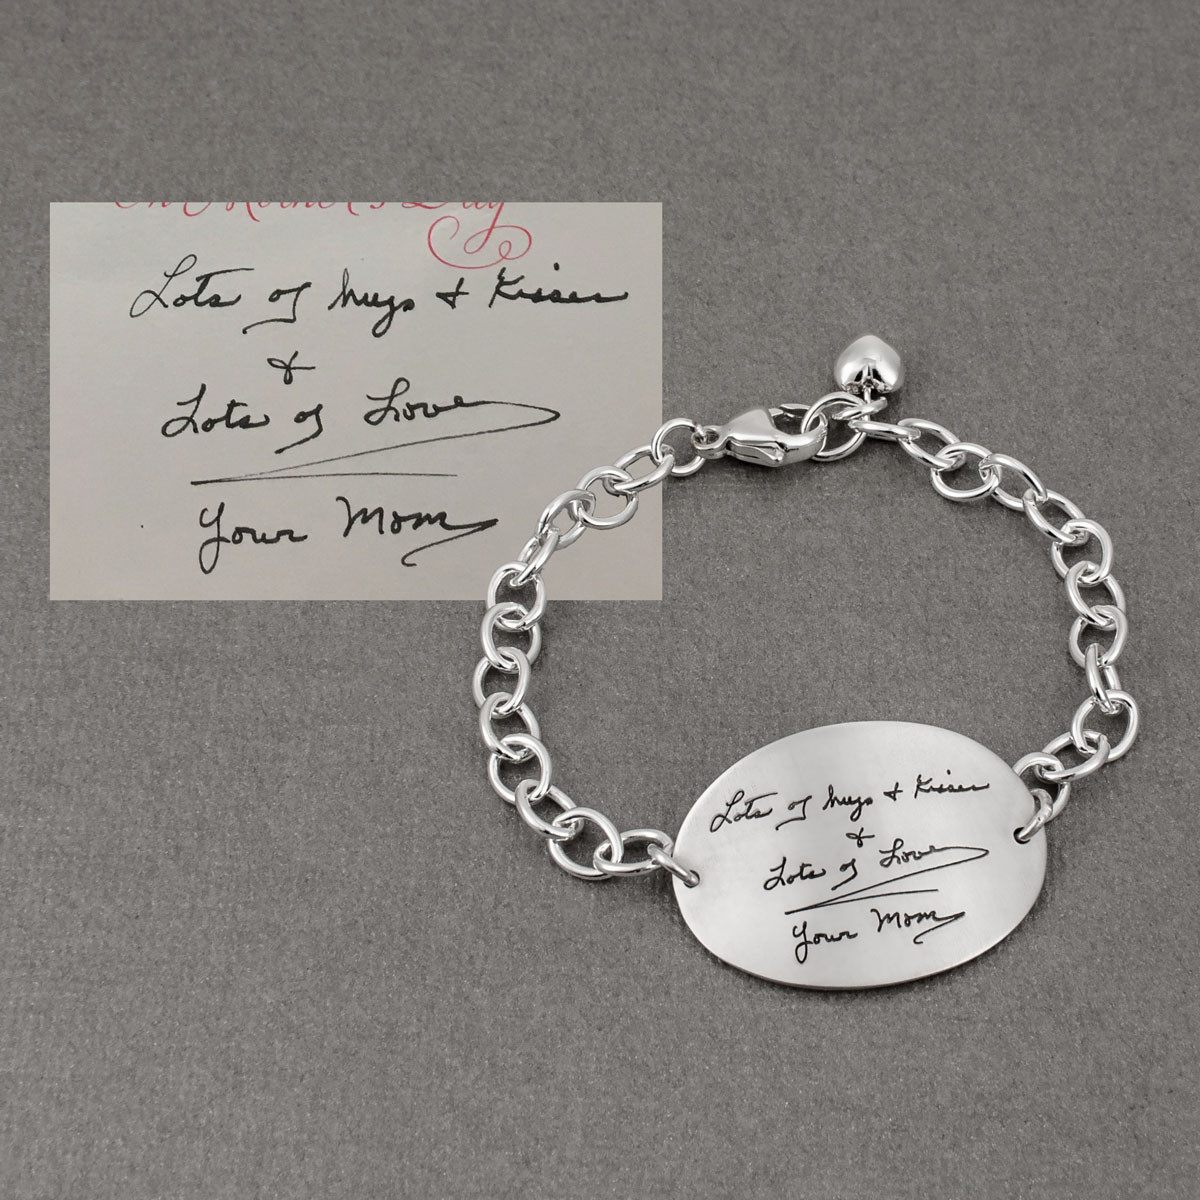 Large oval handwriting bracelet showing actual handwriting used to make the bracelet